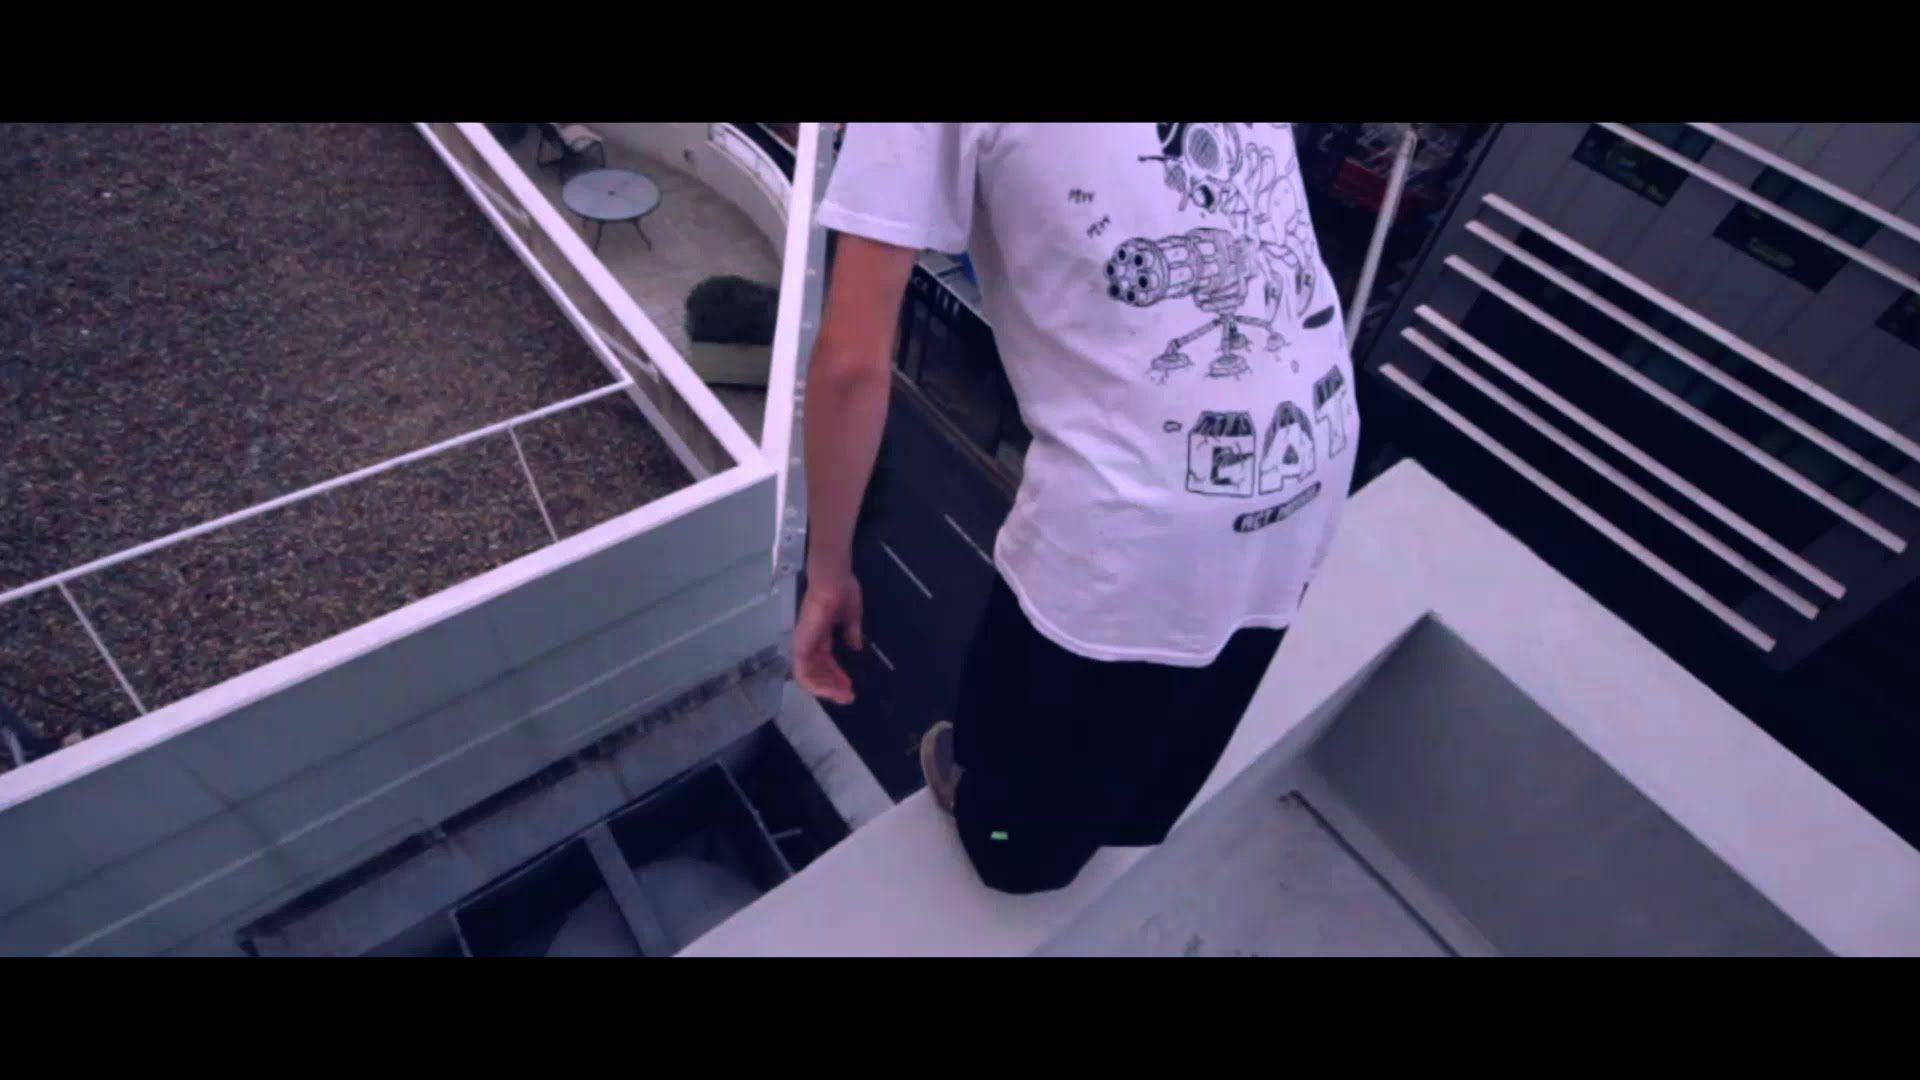 Don T Stop The Motion With Images Parkour Moves Parkour Clothing Motion